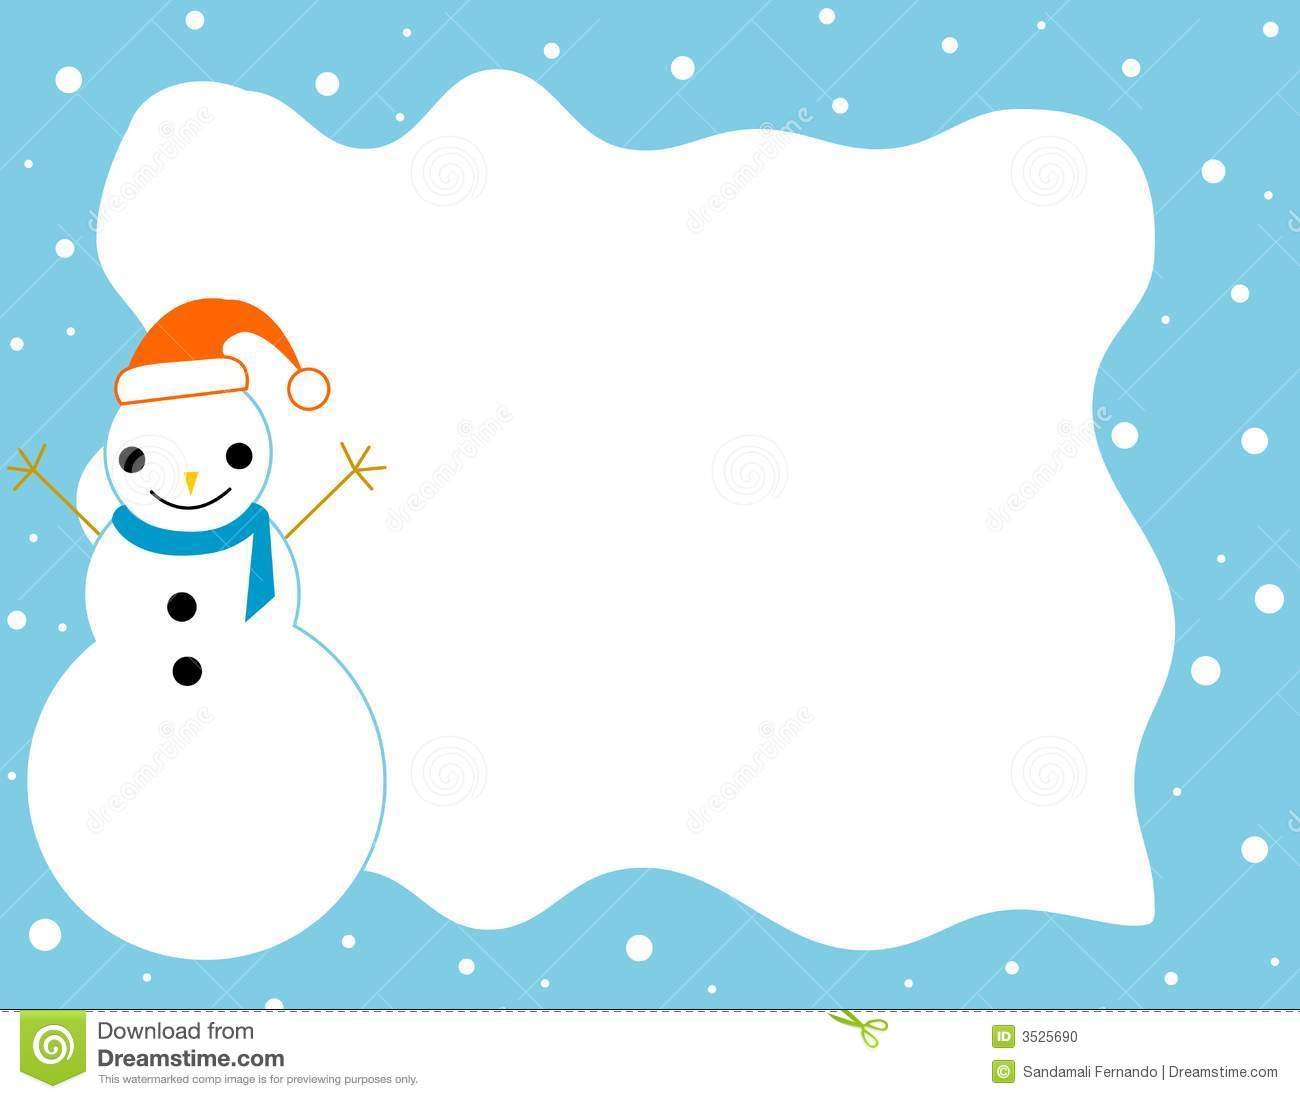 Clean blue snowman and falling snow Christmas border / frame.